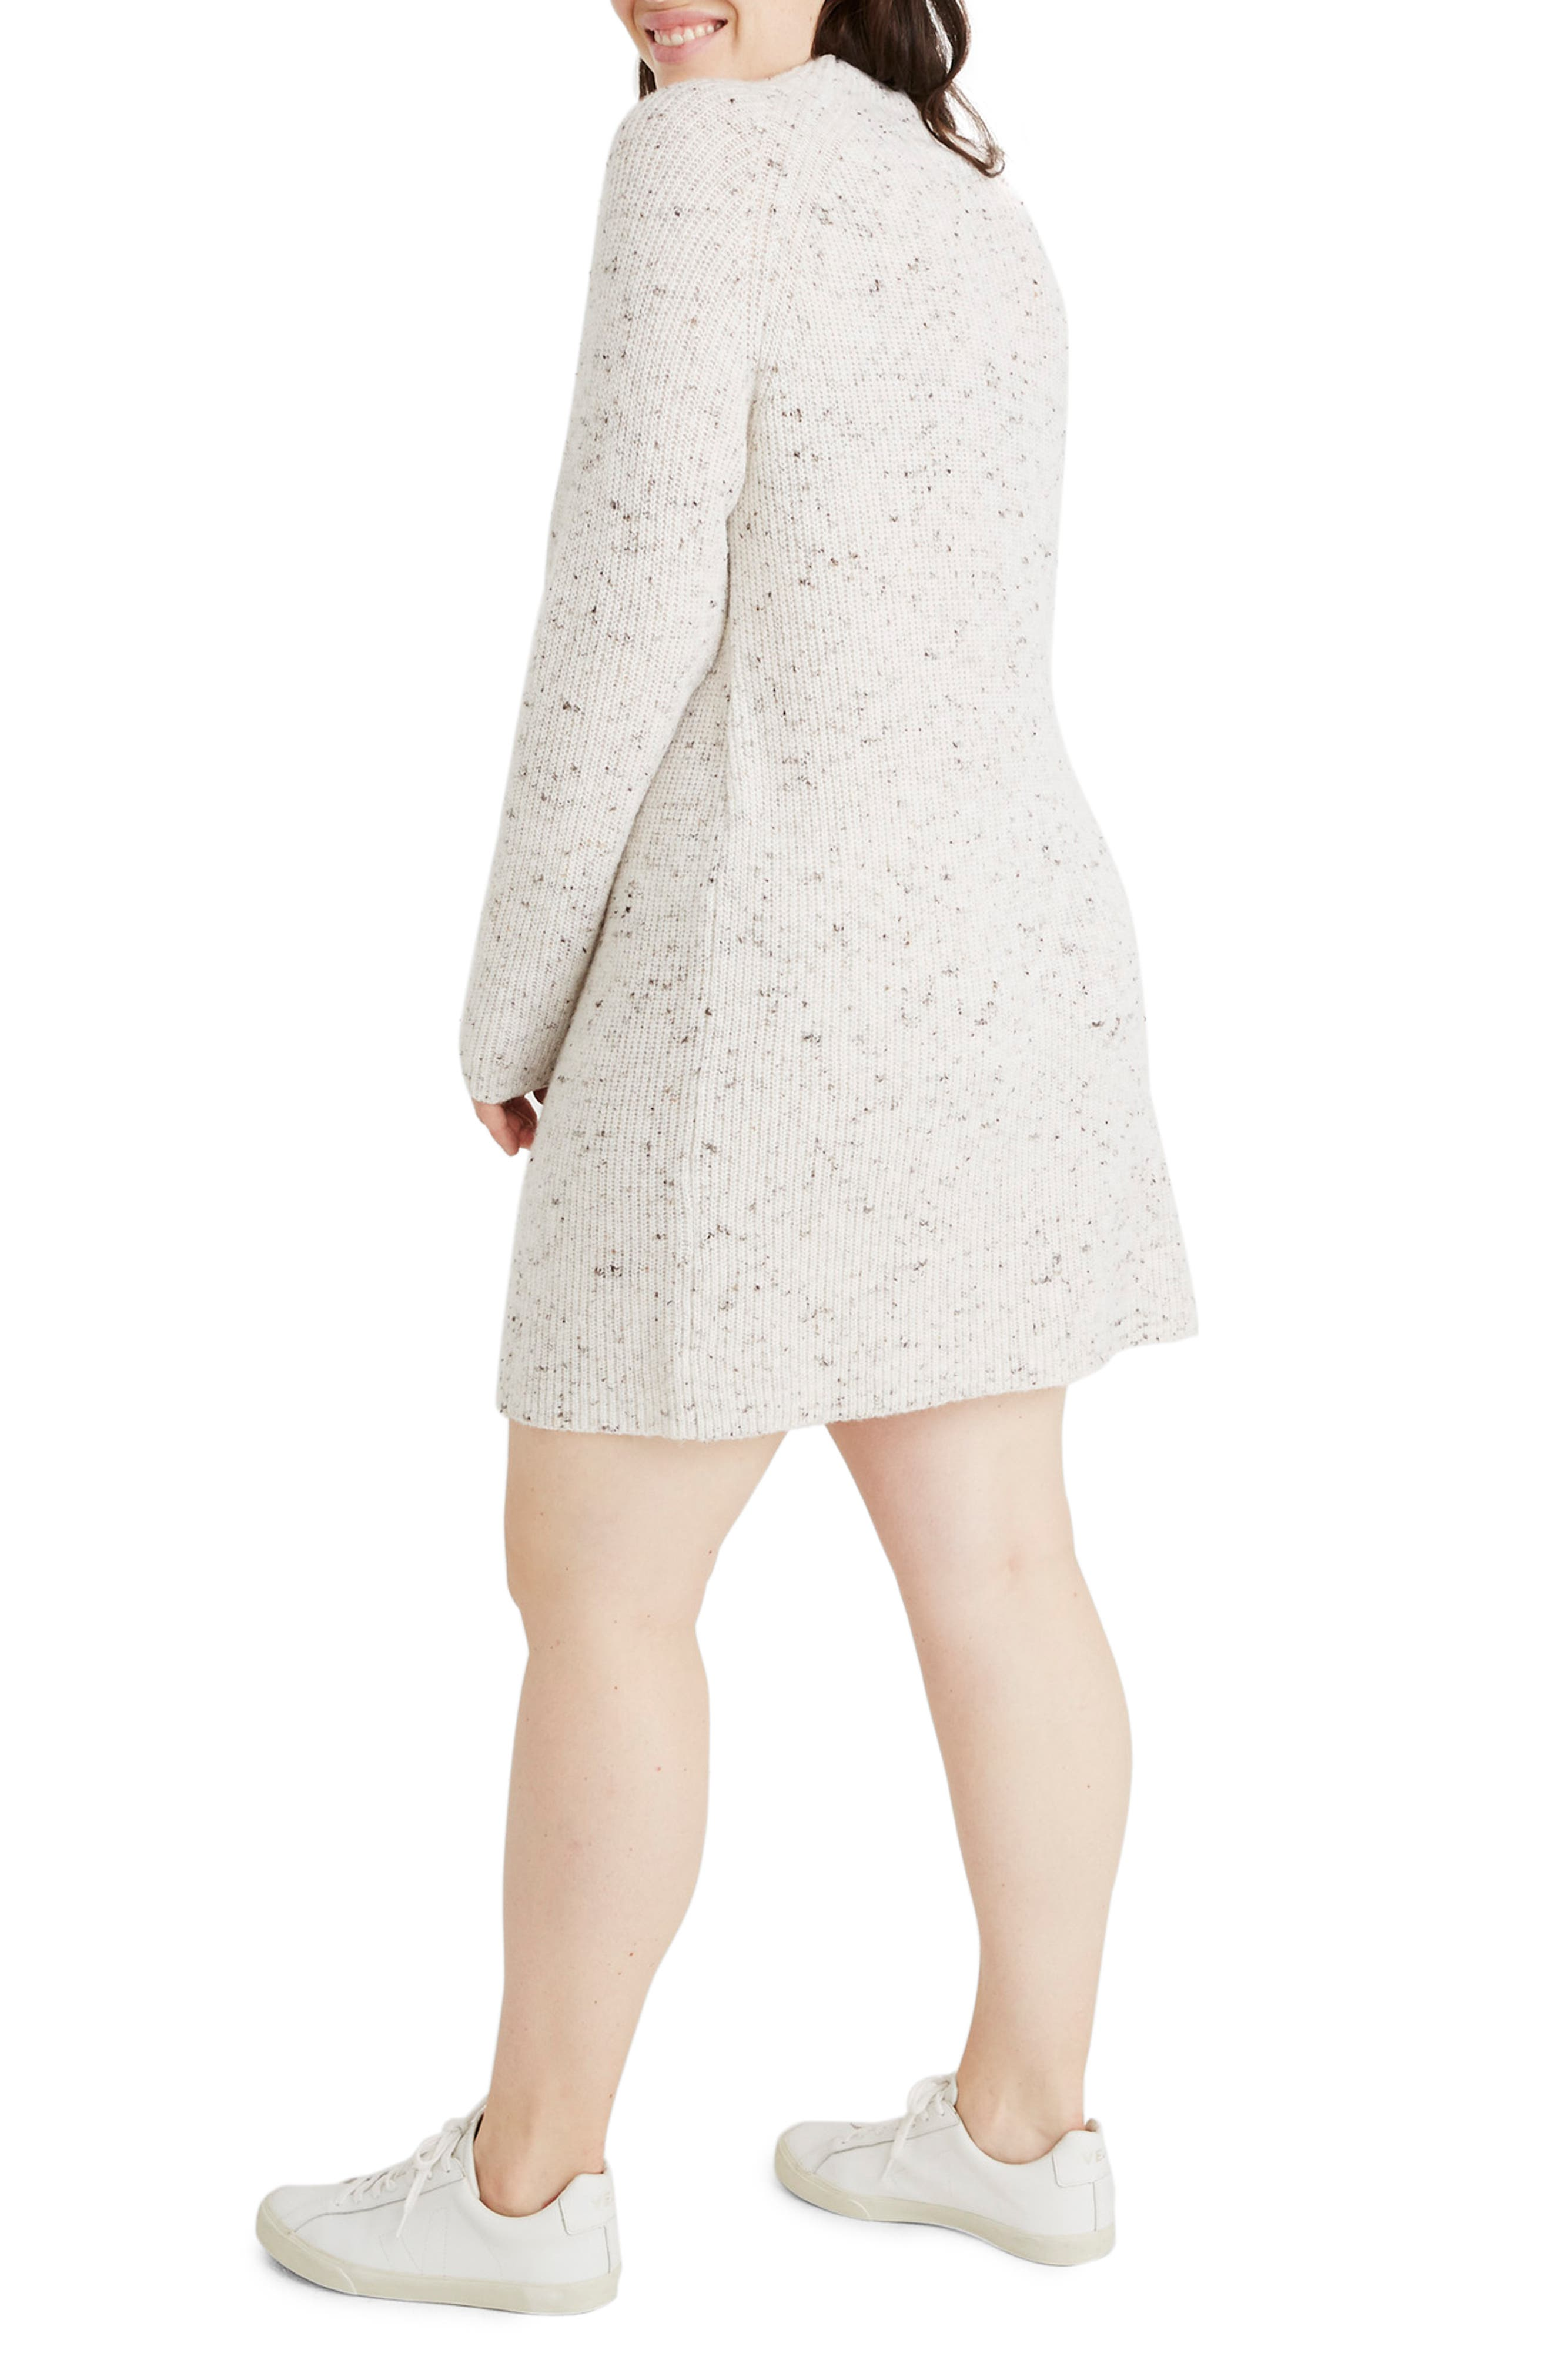 Northfield Donegal Mock Neck Sweater Dress,                             Alternate thumbnail 8, color,                             DONEGAL STORM